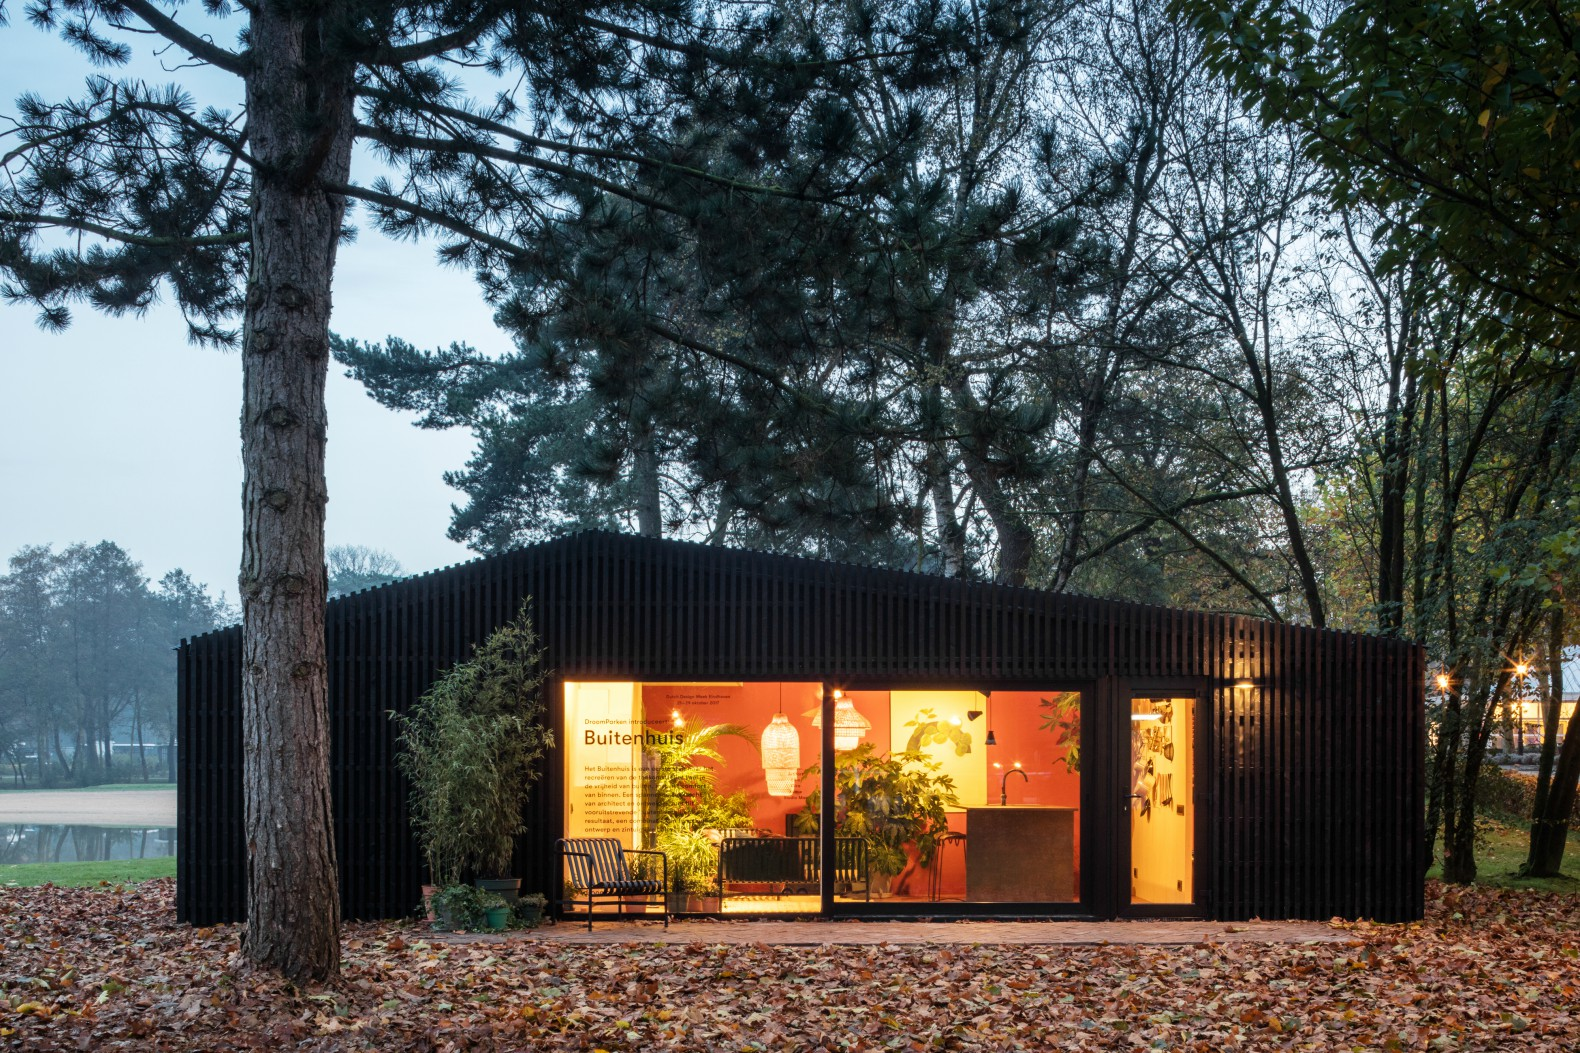 The Buitenhuis is a tiny house you can rent in the woods of the Netherlands